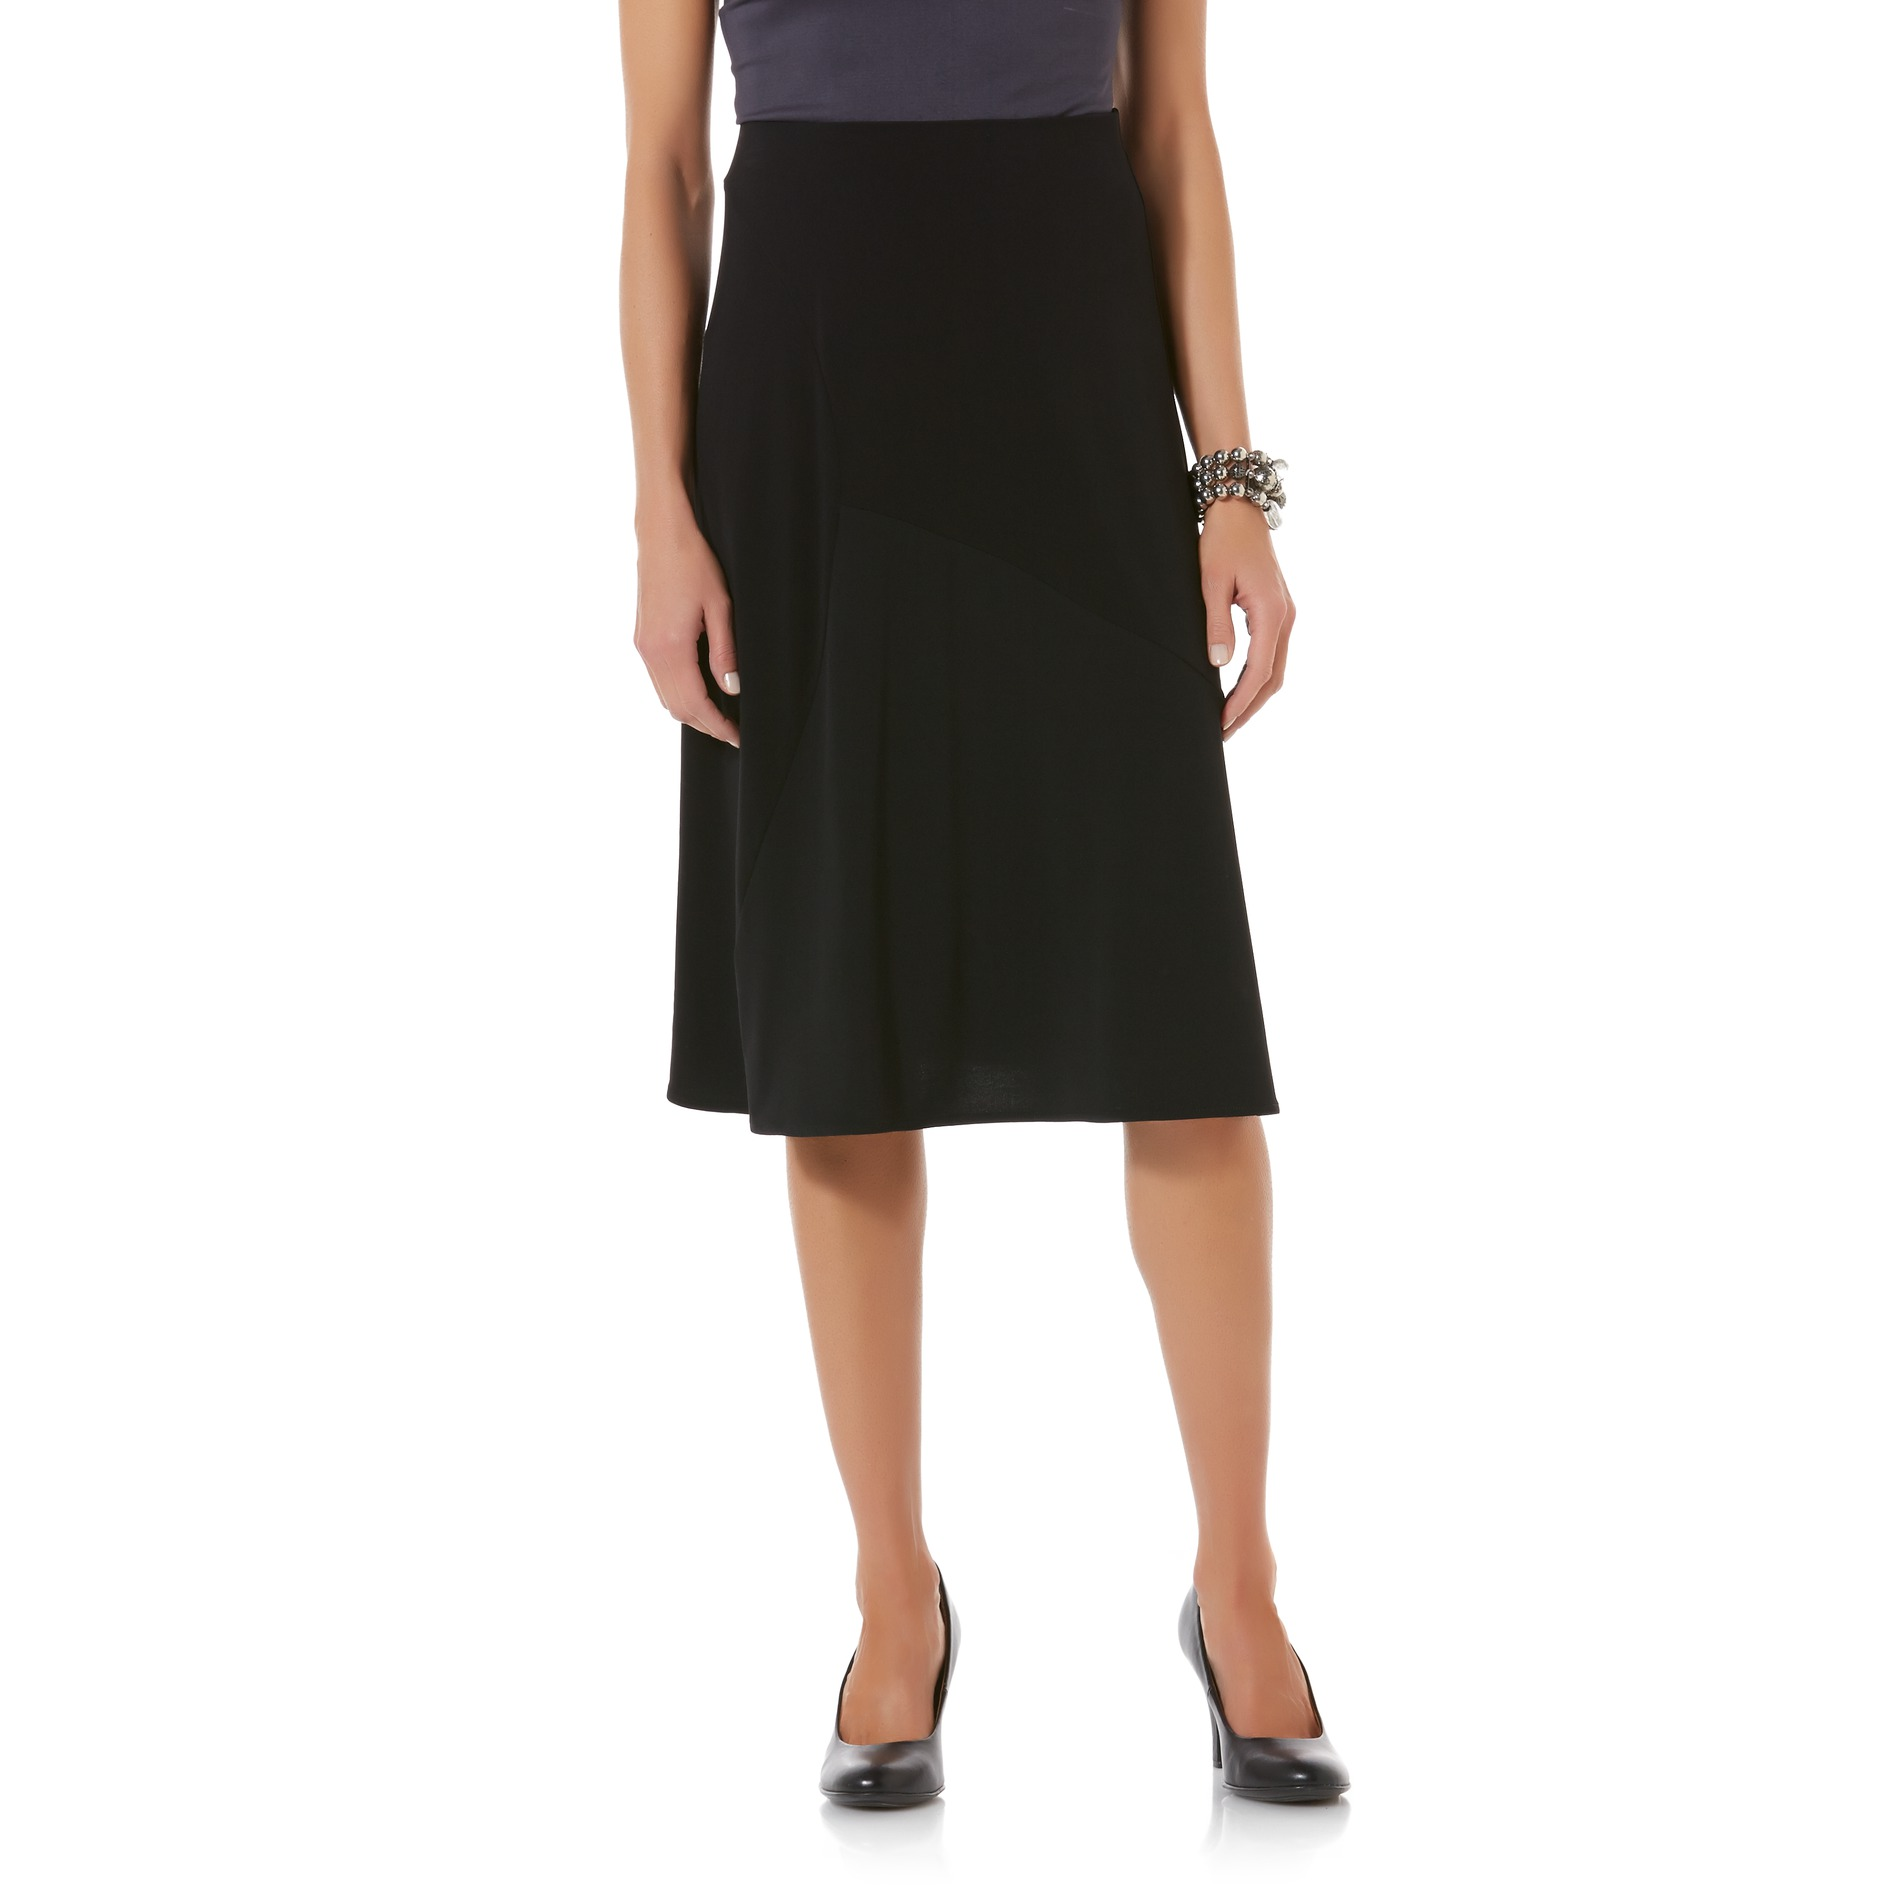 School Skirts Kmart Jaclyn Smith Women 39s Seamed A Line Midi Skirt Kmart